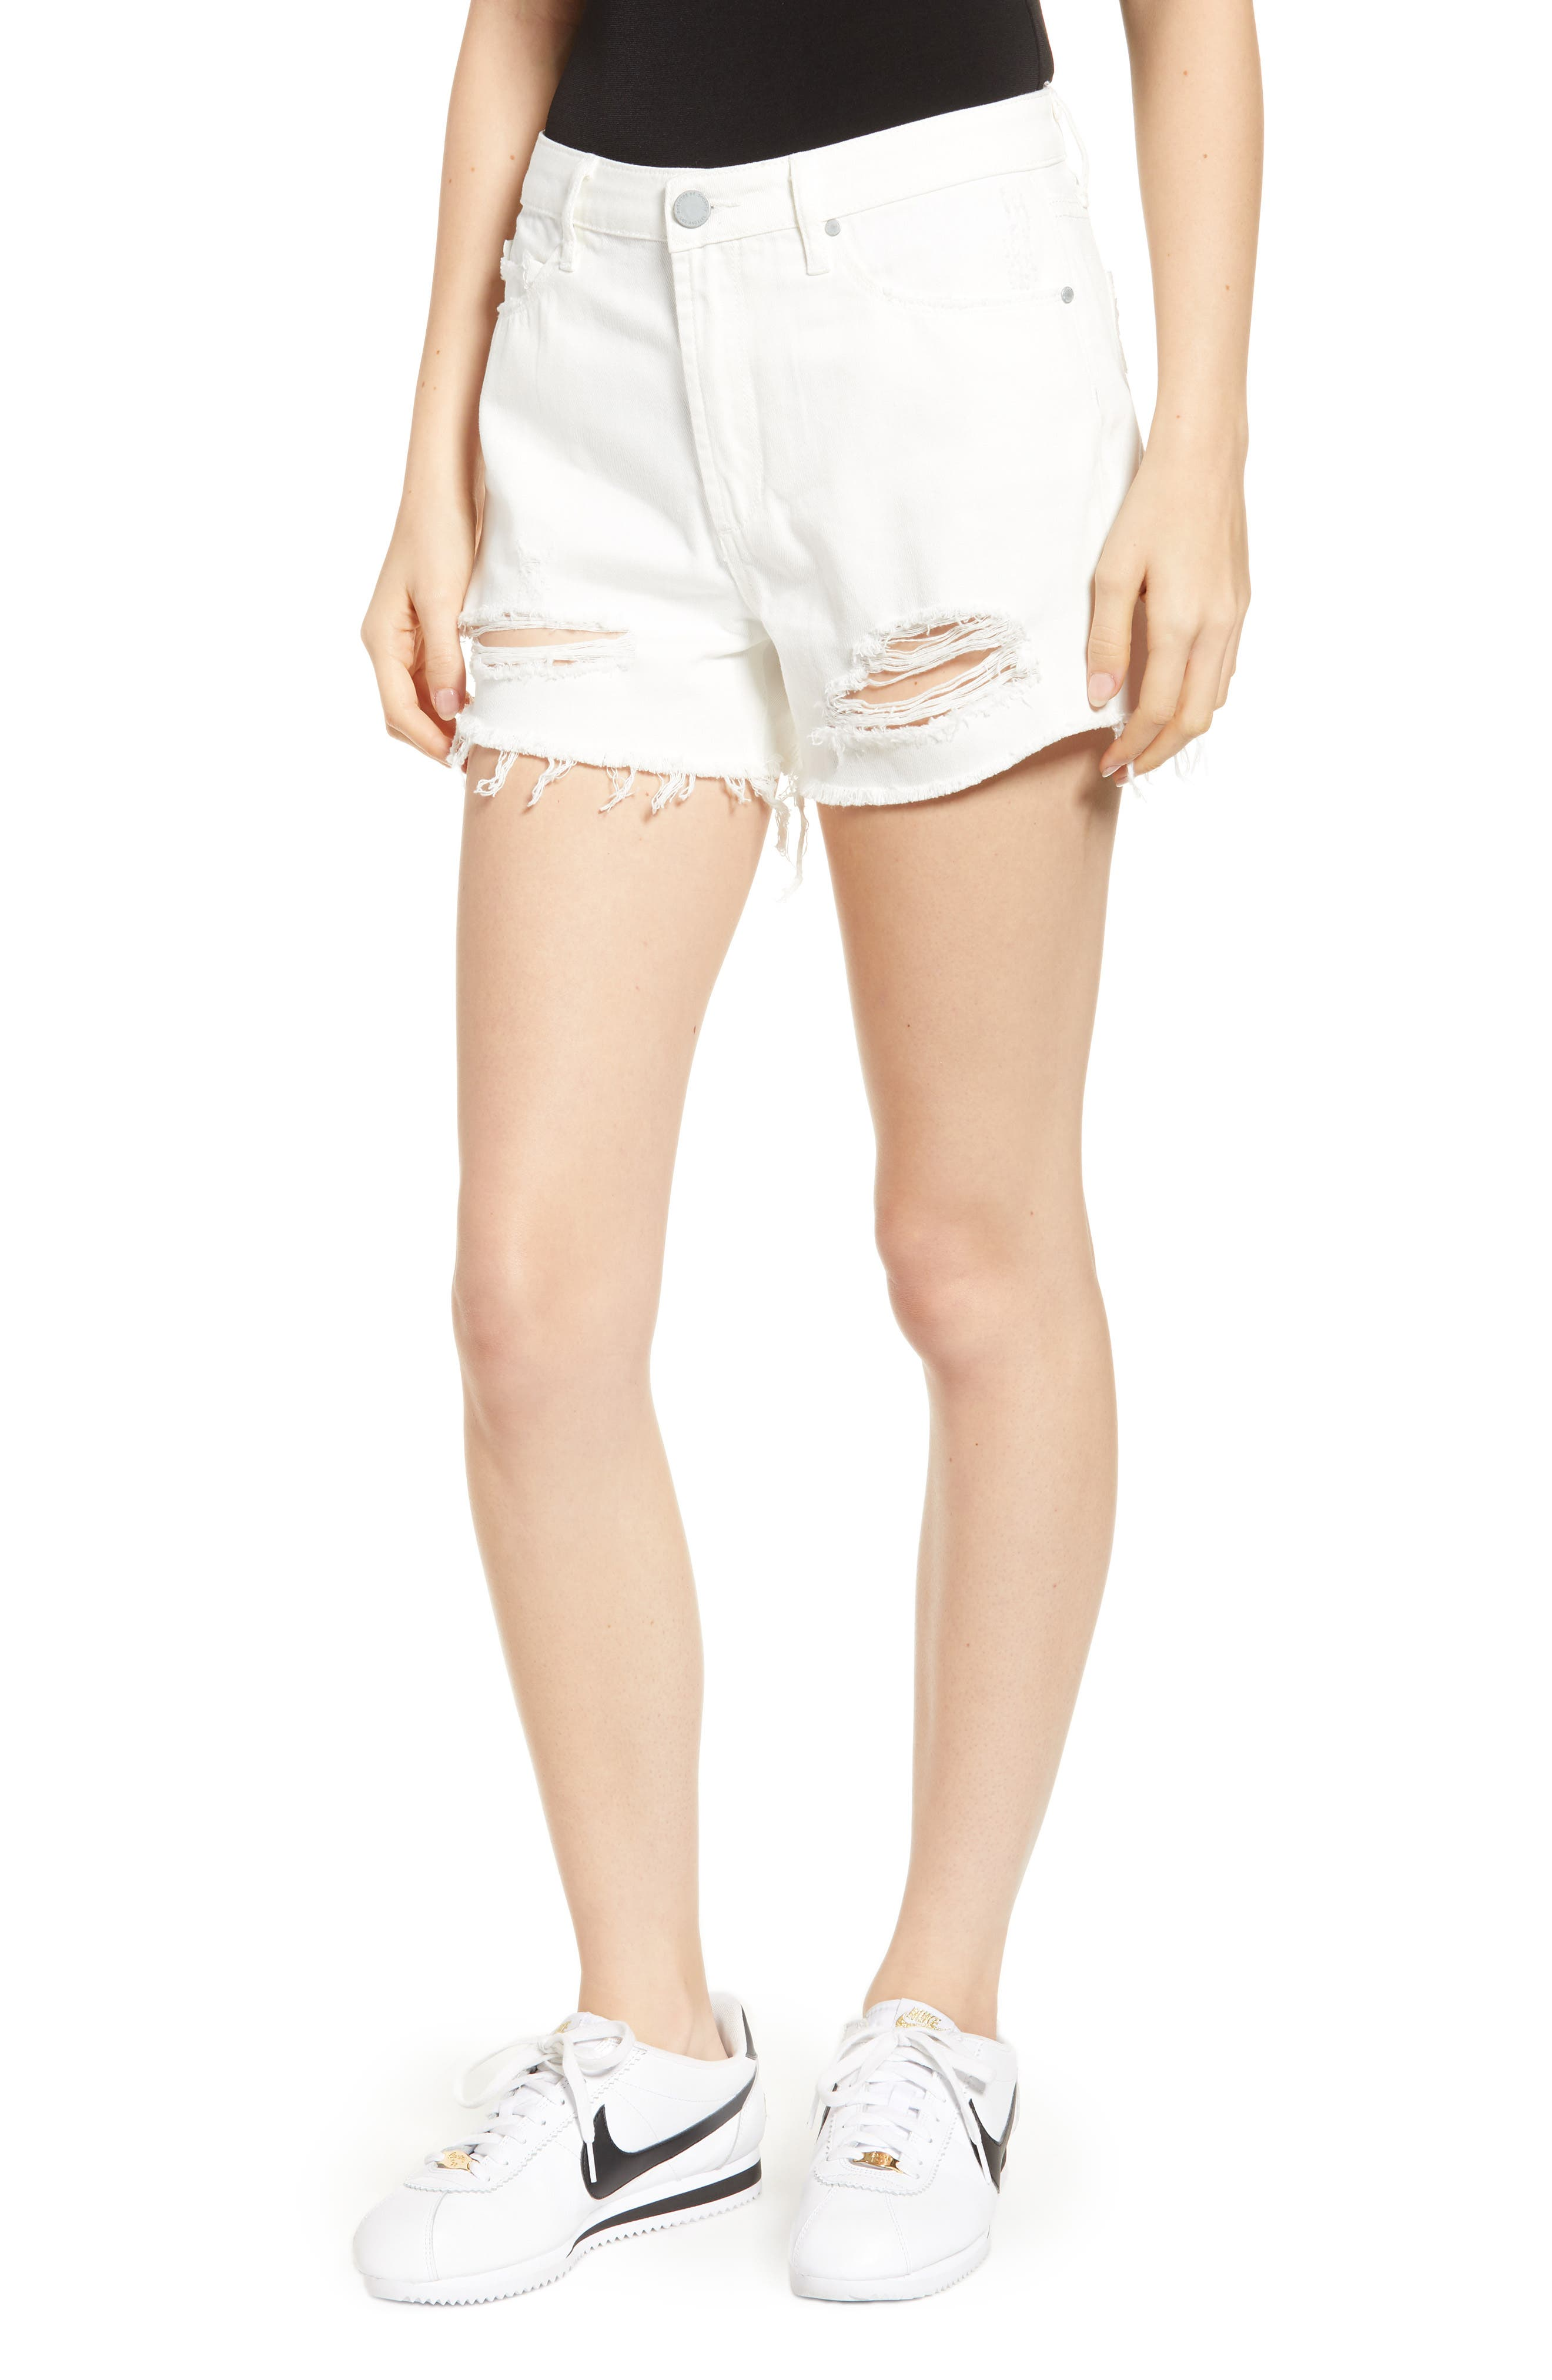 Image of Articles of Society Meredith Ripped & Frayed High Rise Jean Shorts